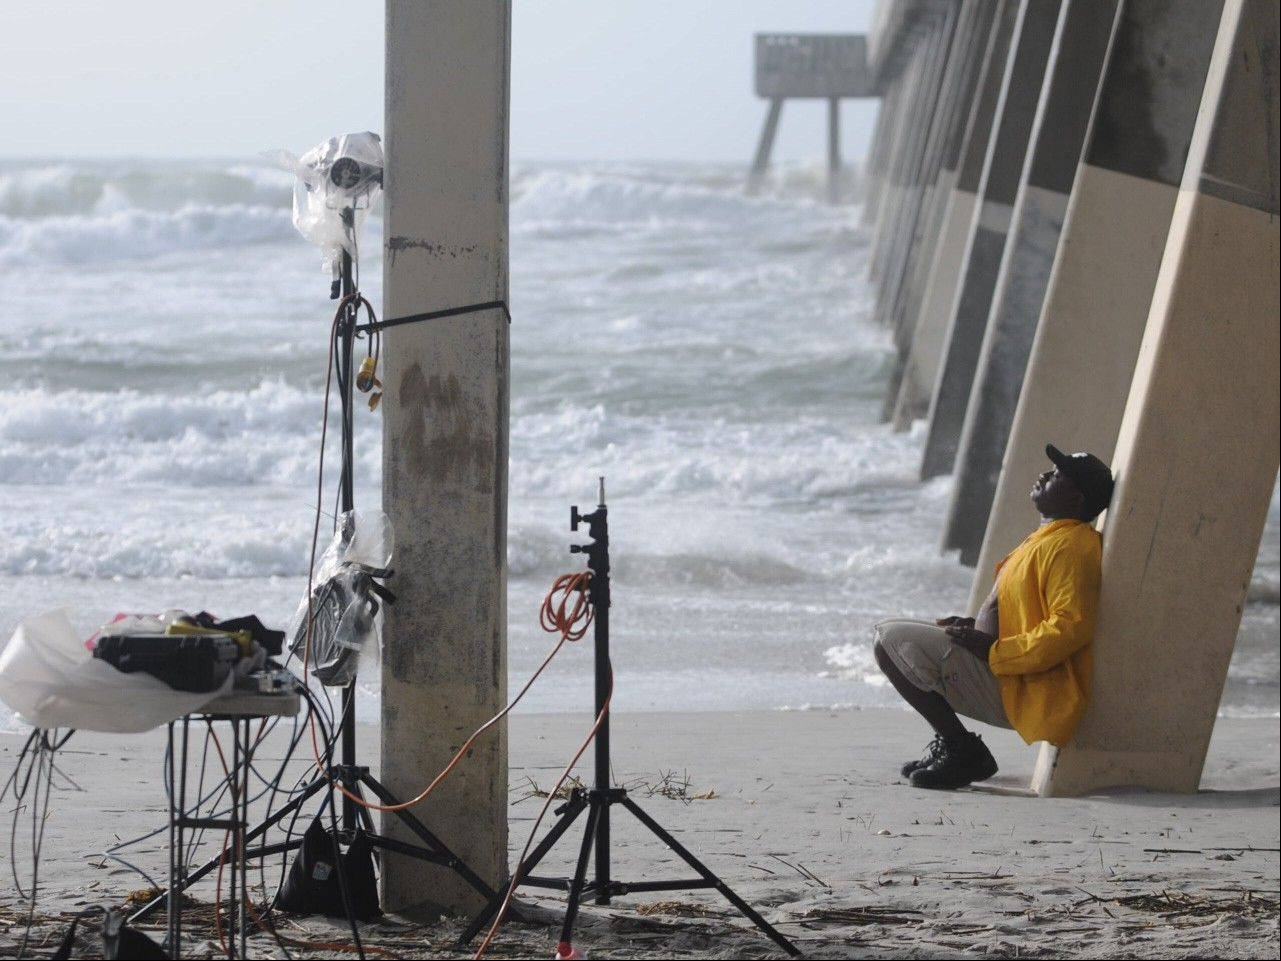 Paul Jackson with CNN's storm coverage team waits Friday to do a live shot under the Johnnie Mercer's Pier in Wrightsville Beach, N.C. Tropical Storm Andrea is bringing rain and wind to Carolinas, causing thousands to lose power and streams to swell. The storm was racing through South Carolina early Friday and was expected to move into eastern North Carolina by midday.